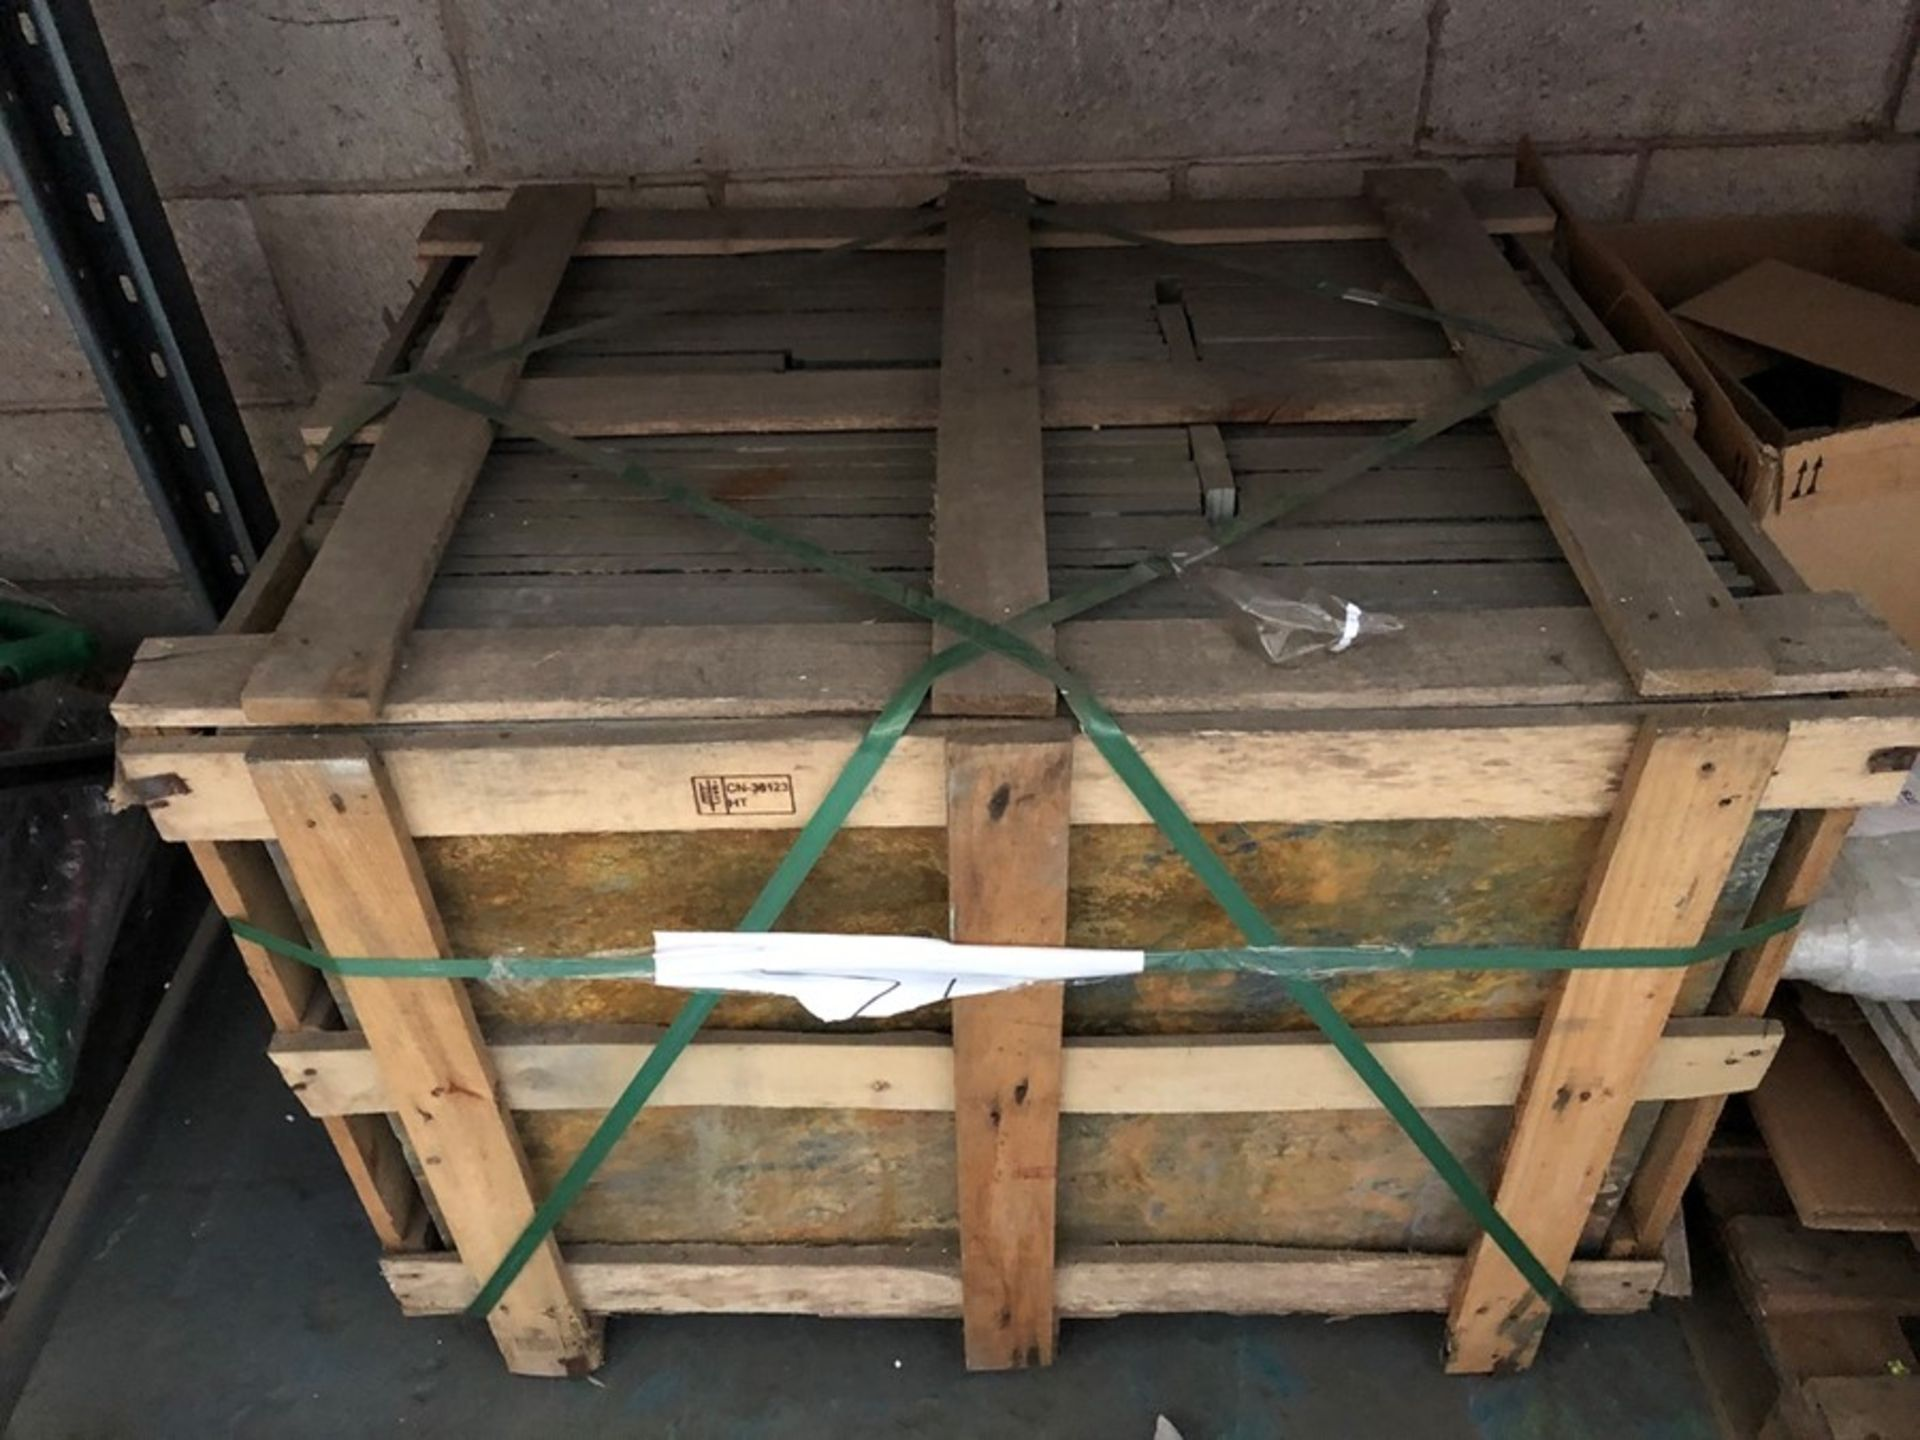 Lot 16 - 1 LOT TO CONTAIN A PALLET OF RUSTED SLATE PAVING SLABS (SOLD AS SEEN)